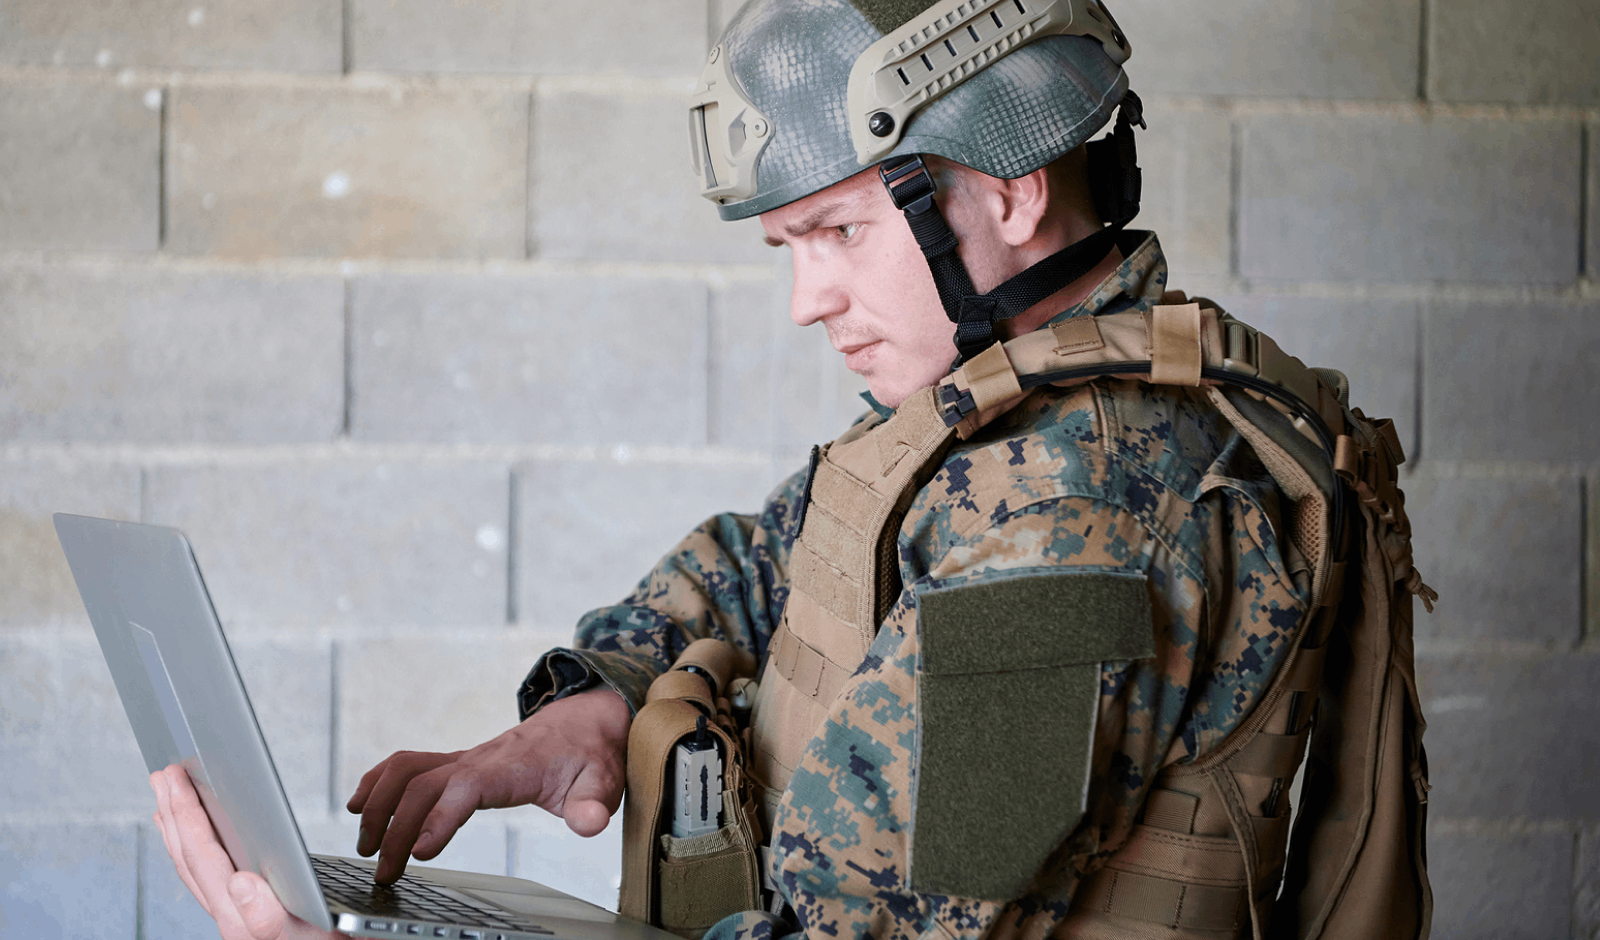 Dynamics Systems wins multi-year, Federal contract, ITES-SW2, with the US Army